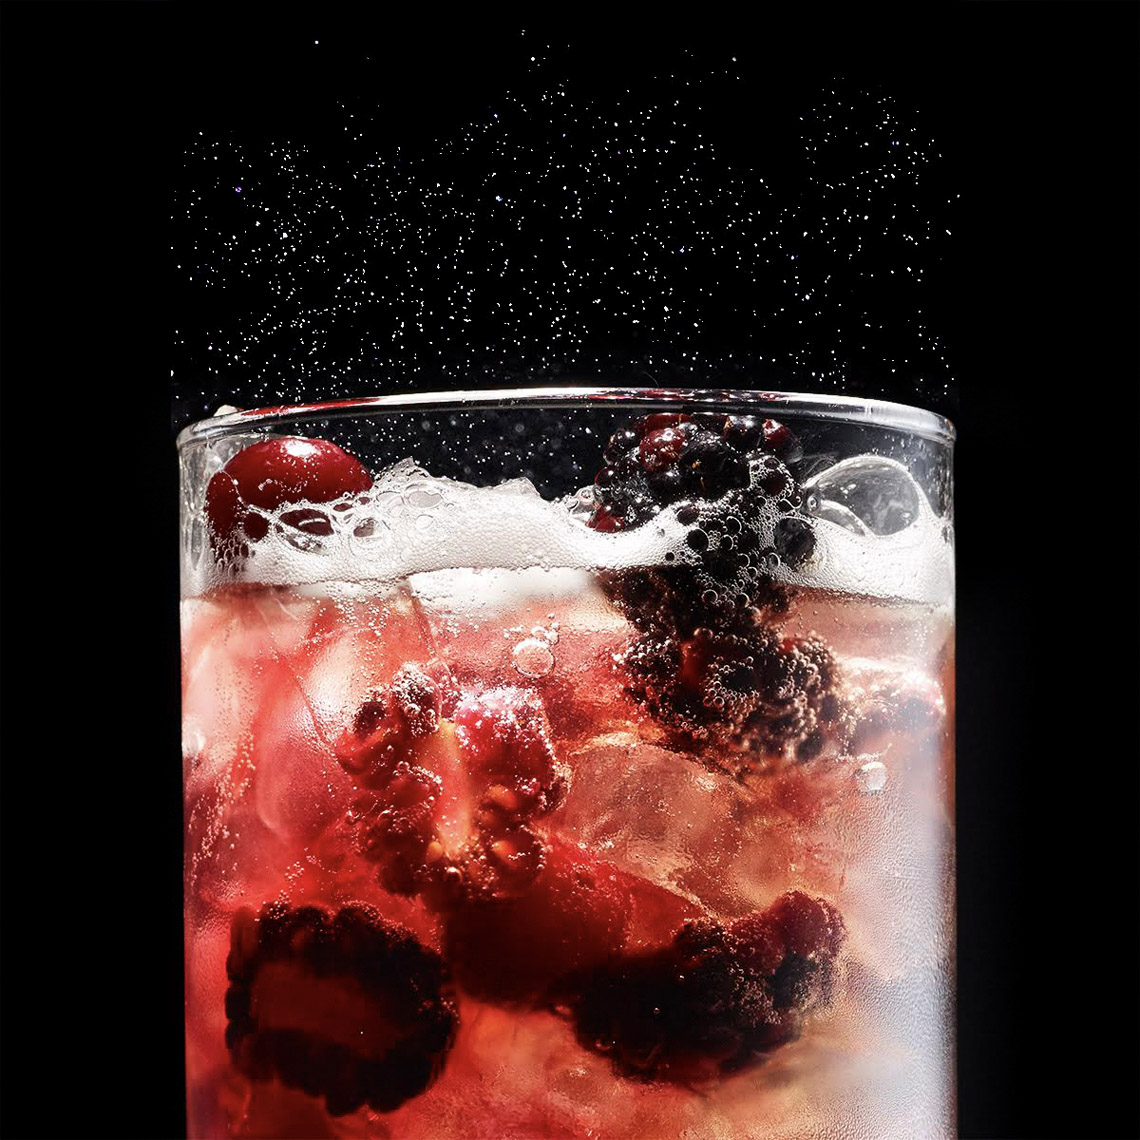 food stylist in San Francisco - Cranbery berry soda, photographed by Maren Caruso photographer